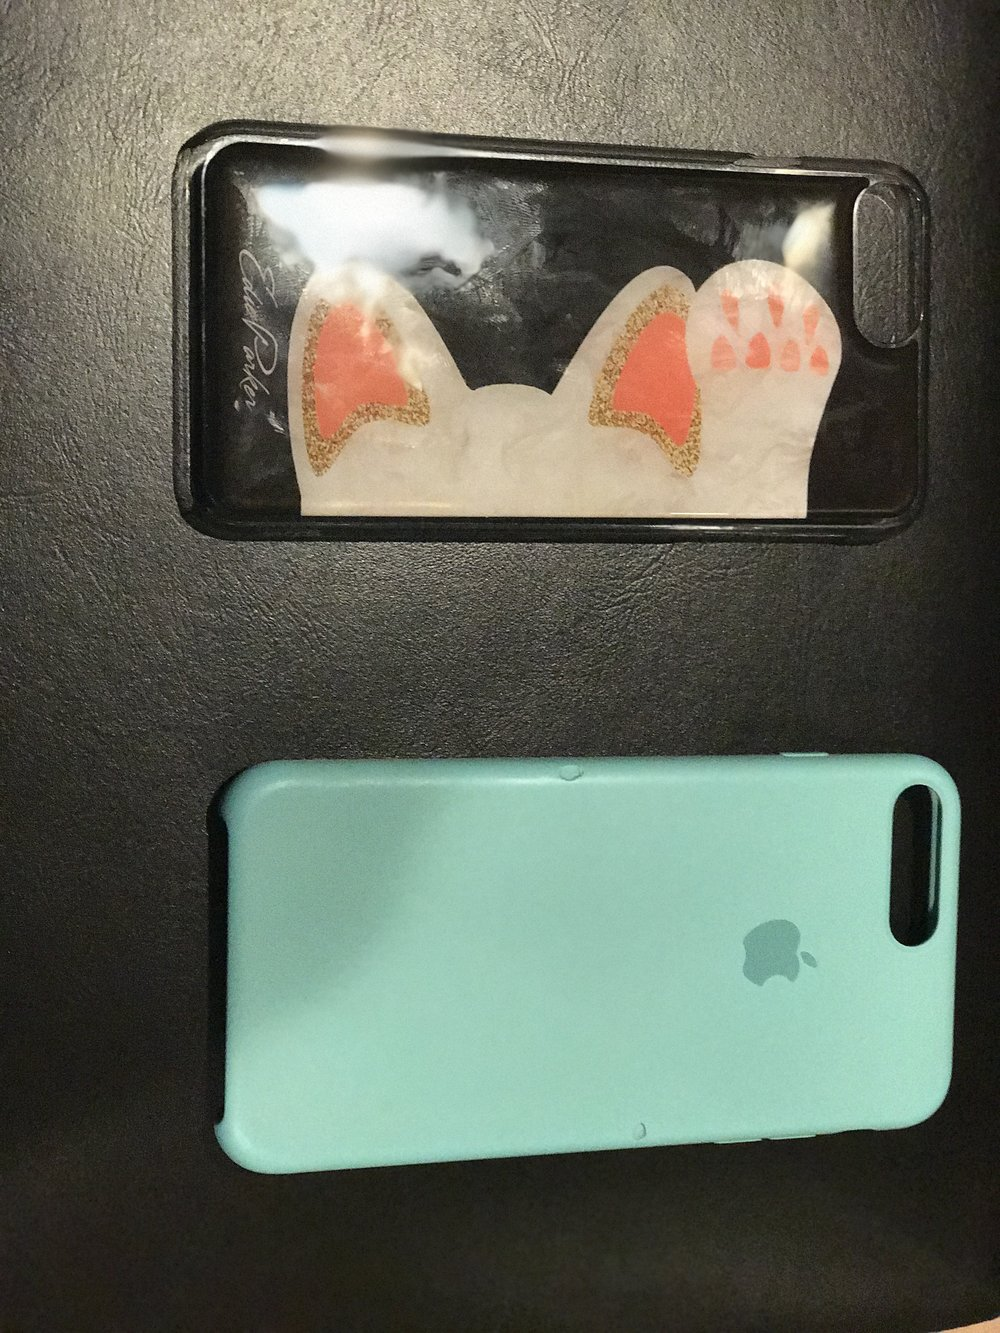 even though my silicone case from Apple is chipped, it still looks cleaner and newer than my just-opened Edie Parker goo.ey iPhone case